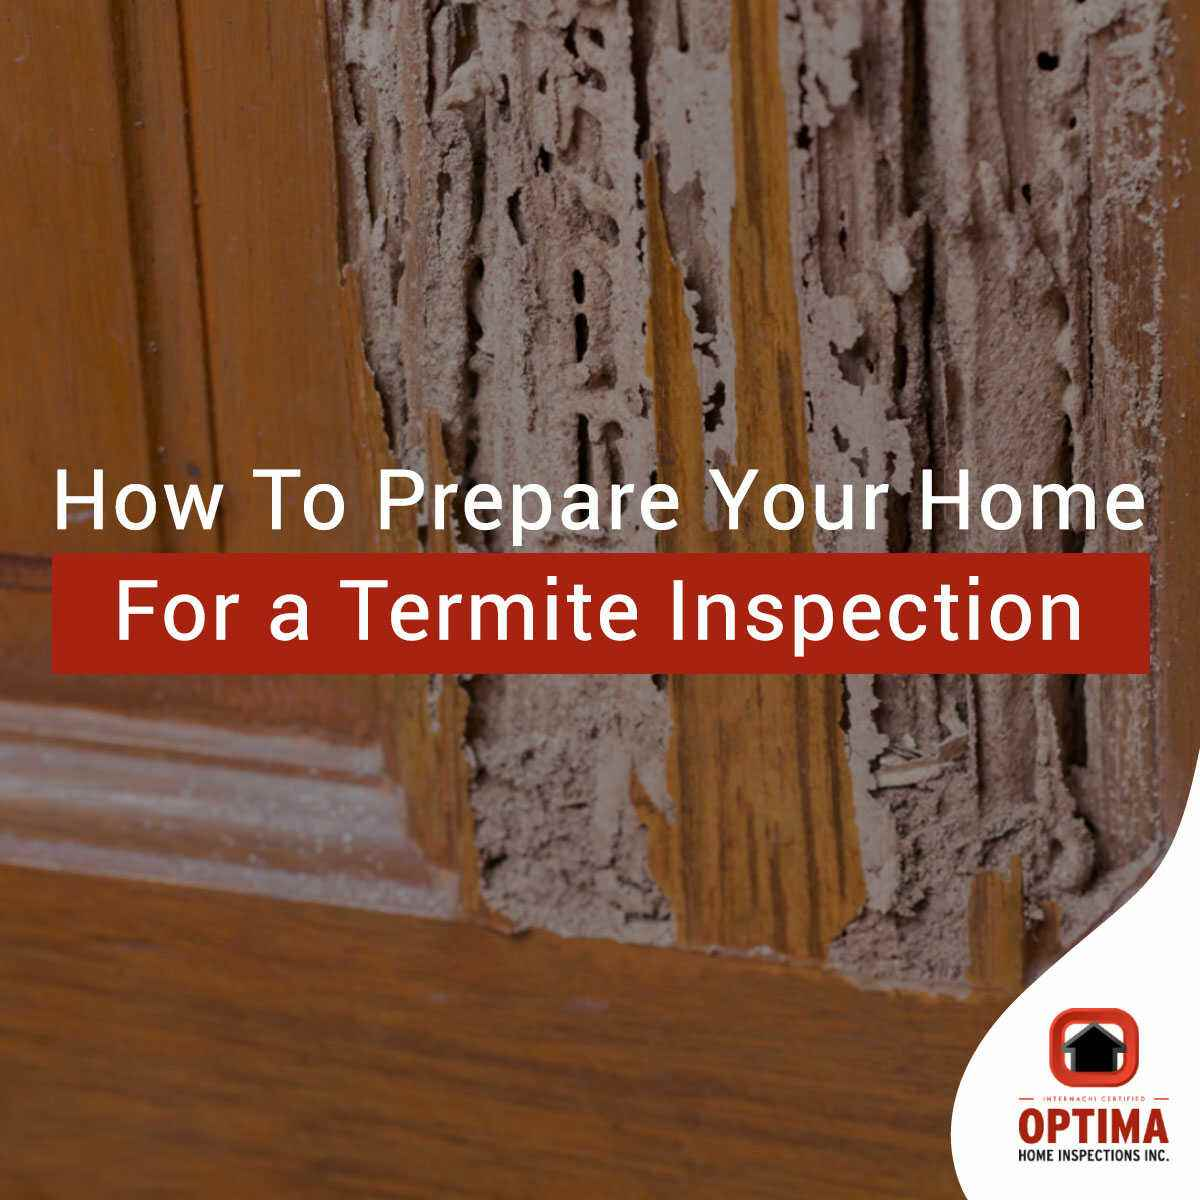 How To Prepare Your Home For a Termite Inspection